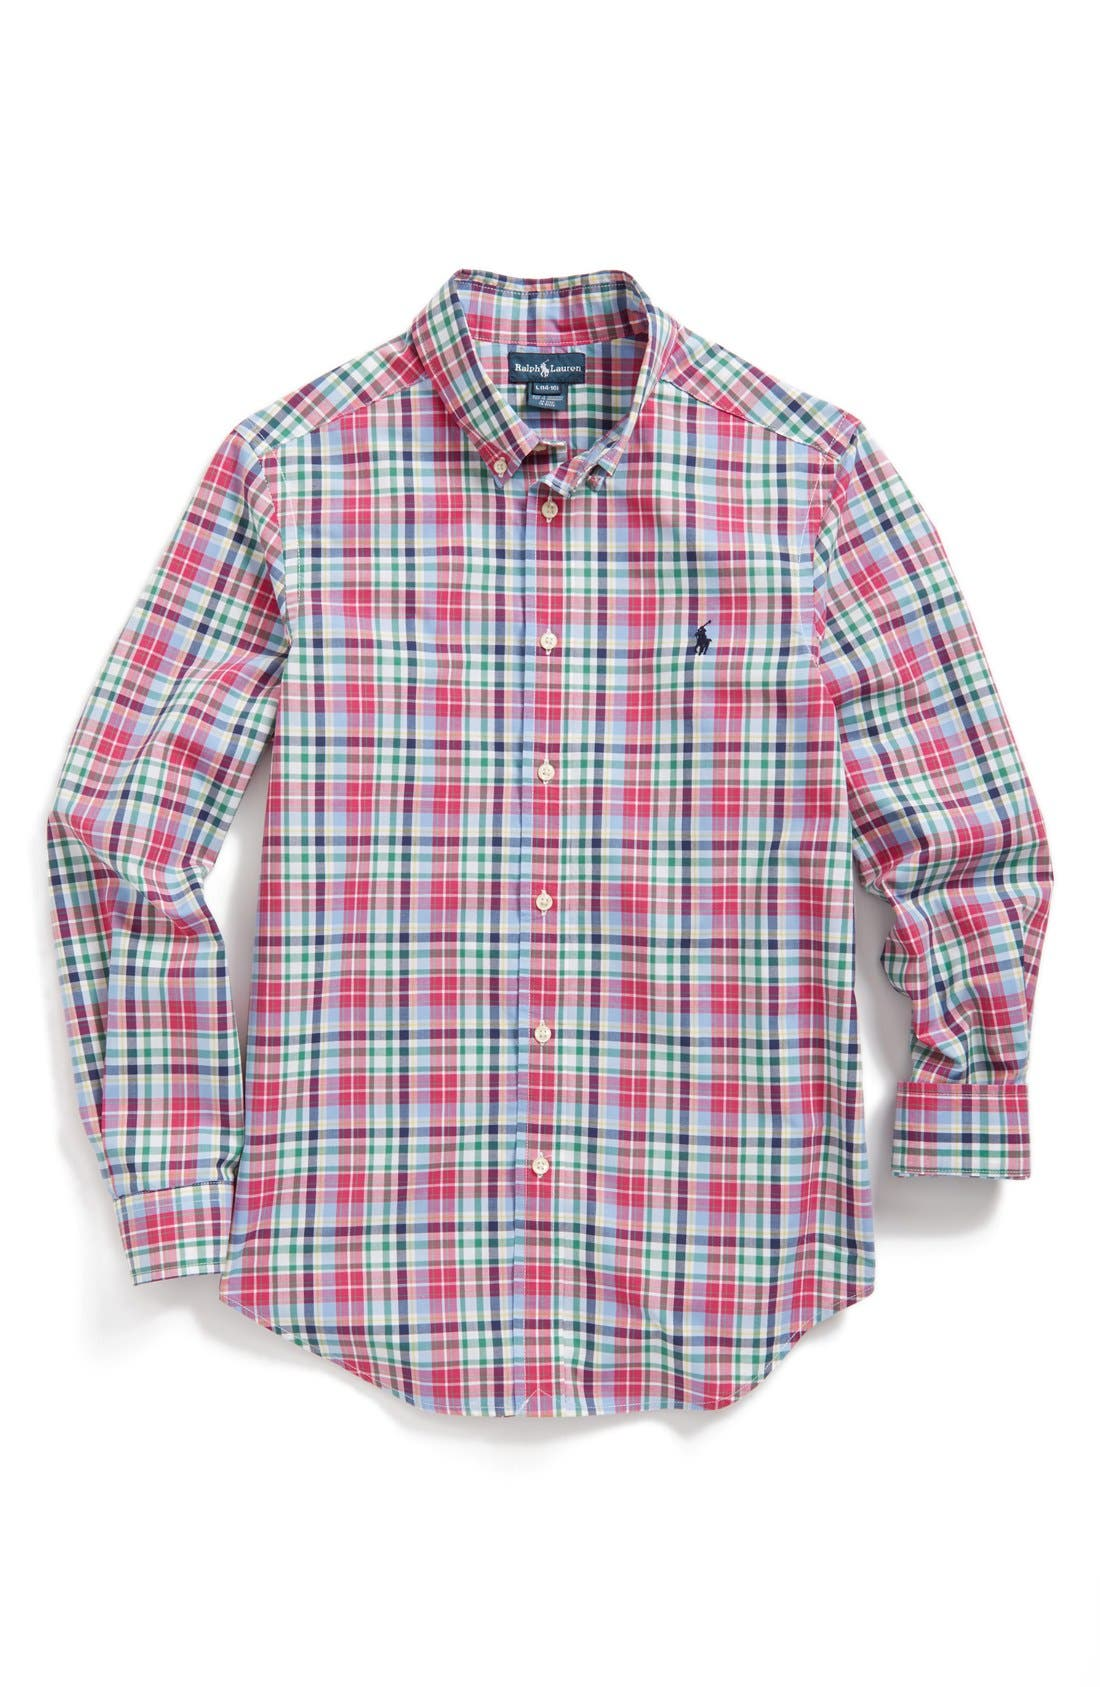 Main Image - Ralph Lauren Plaid Shirt (Big Boys)